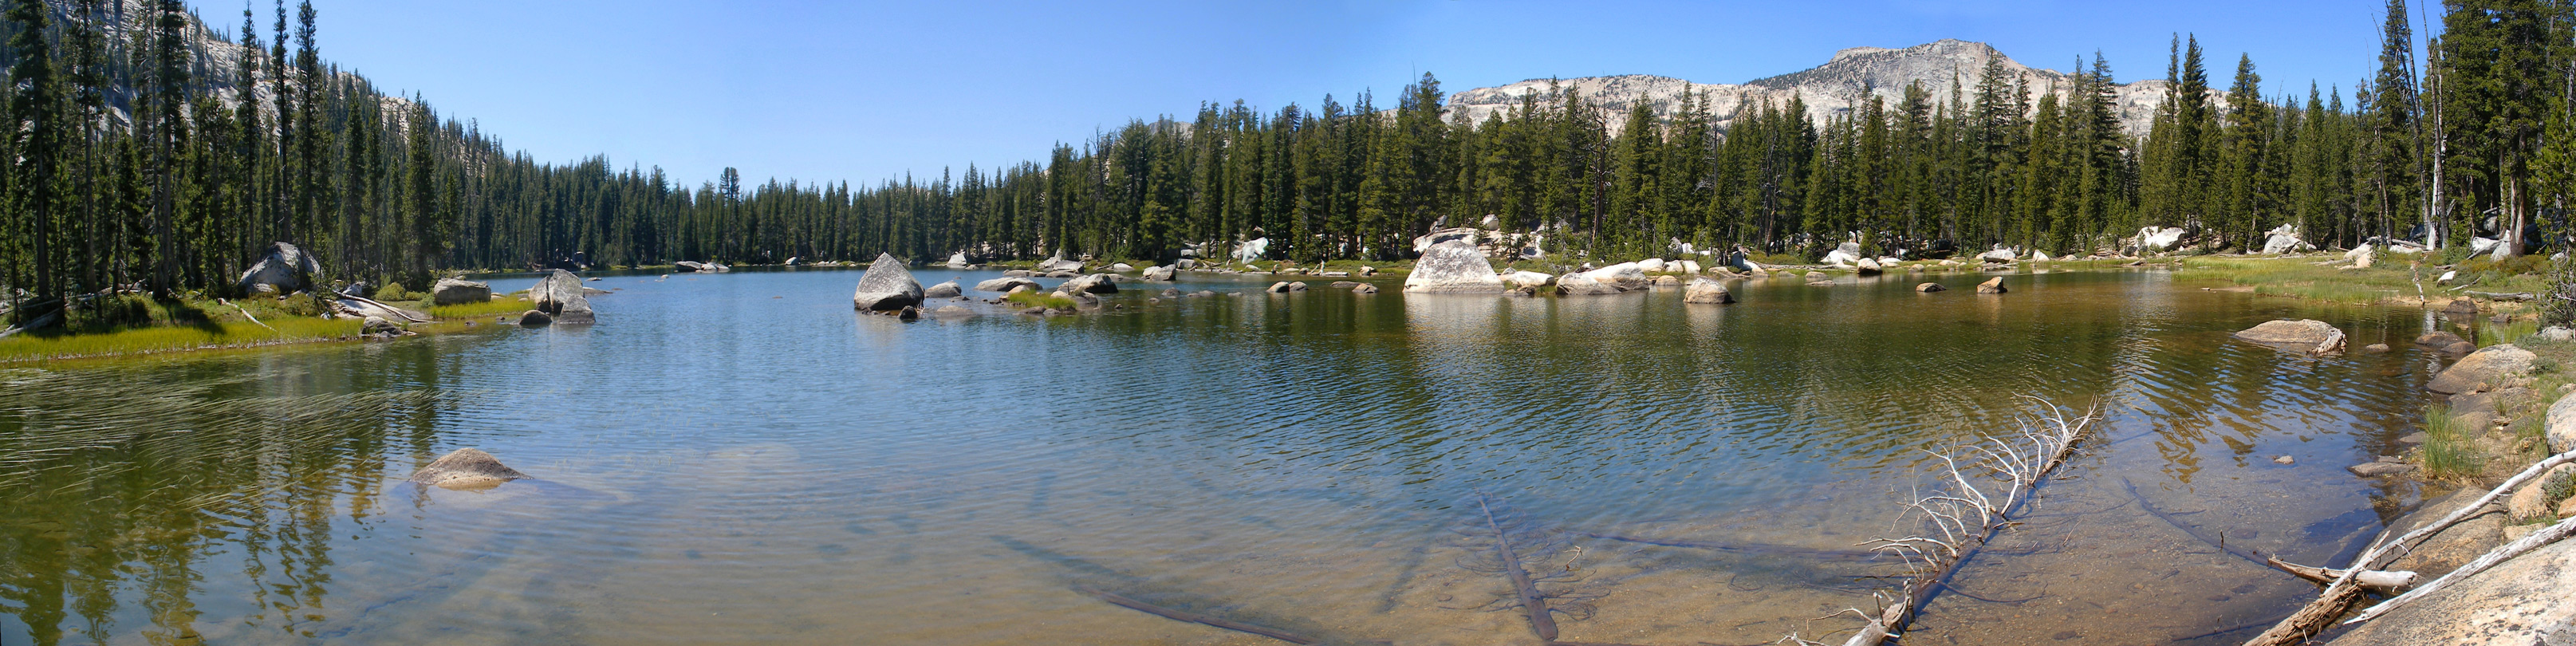 Largest of the Polly Dome Lakes